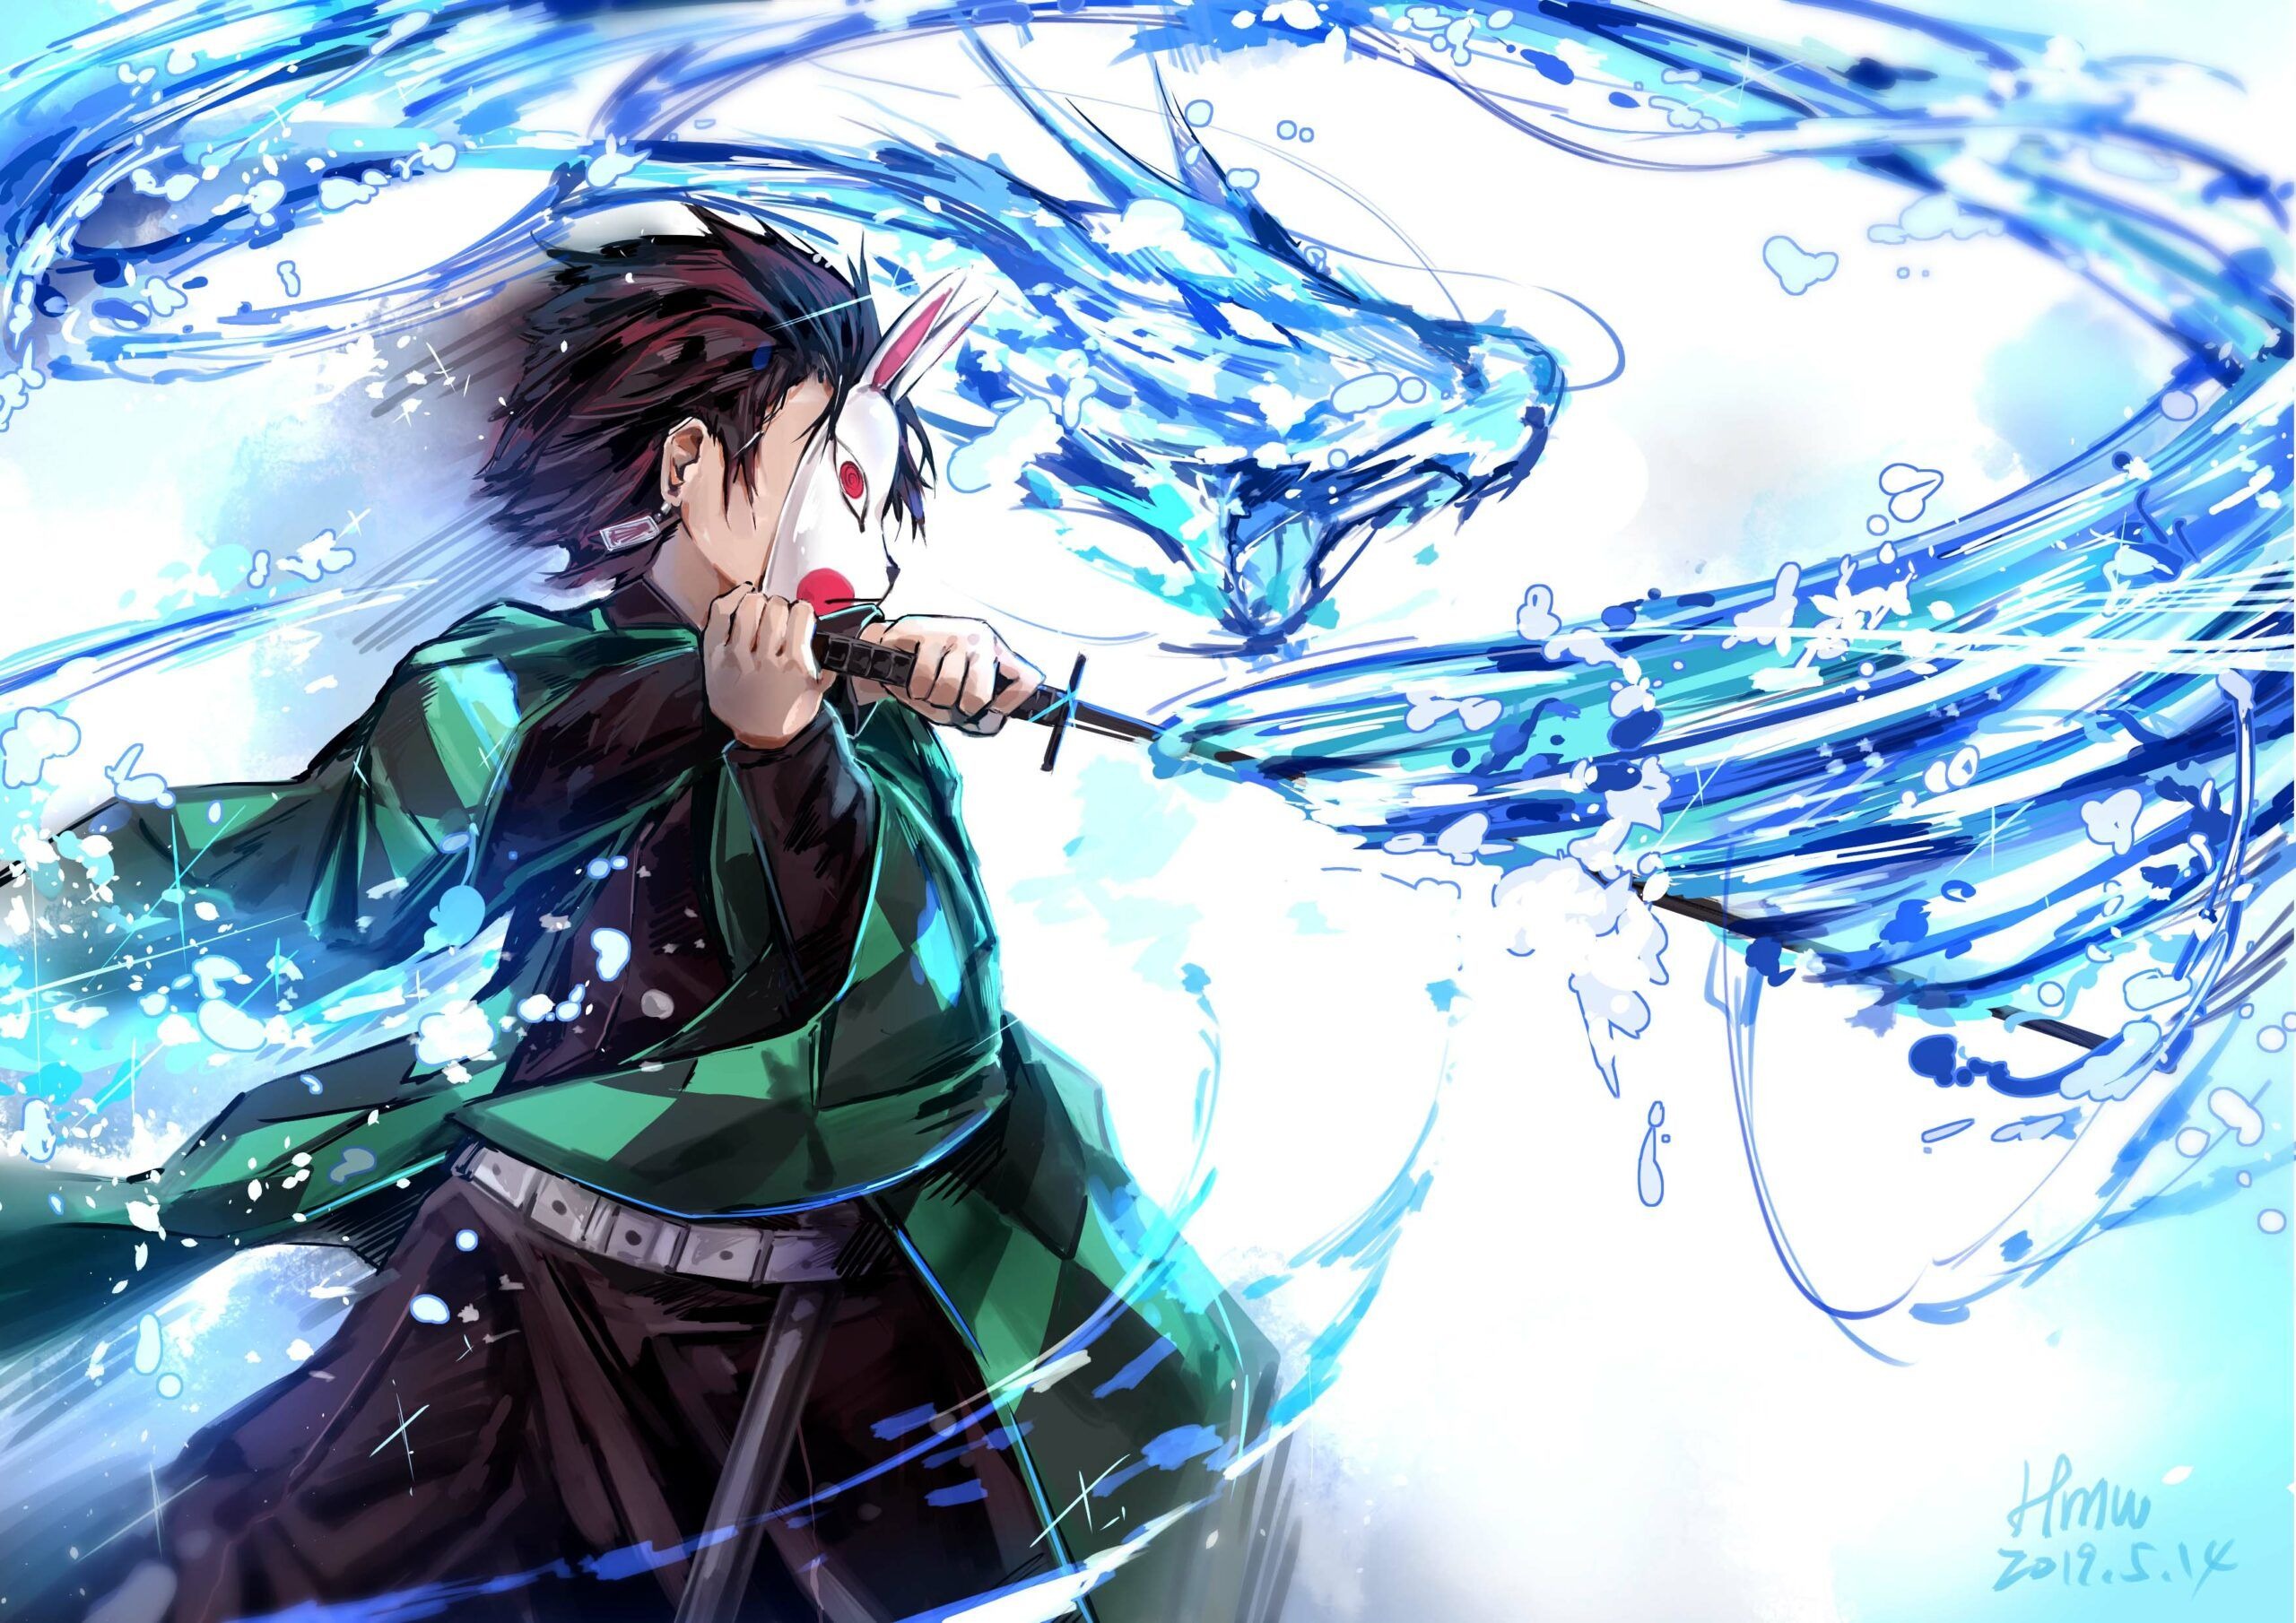 Kimetsu No Yaiba Wallpaper Windows 10 Anime Demon Slayer Anime Anime Images